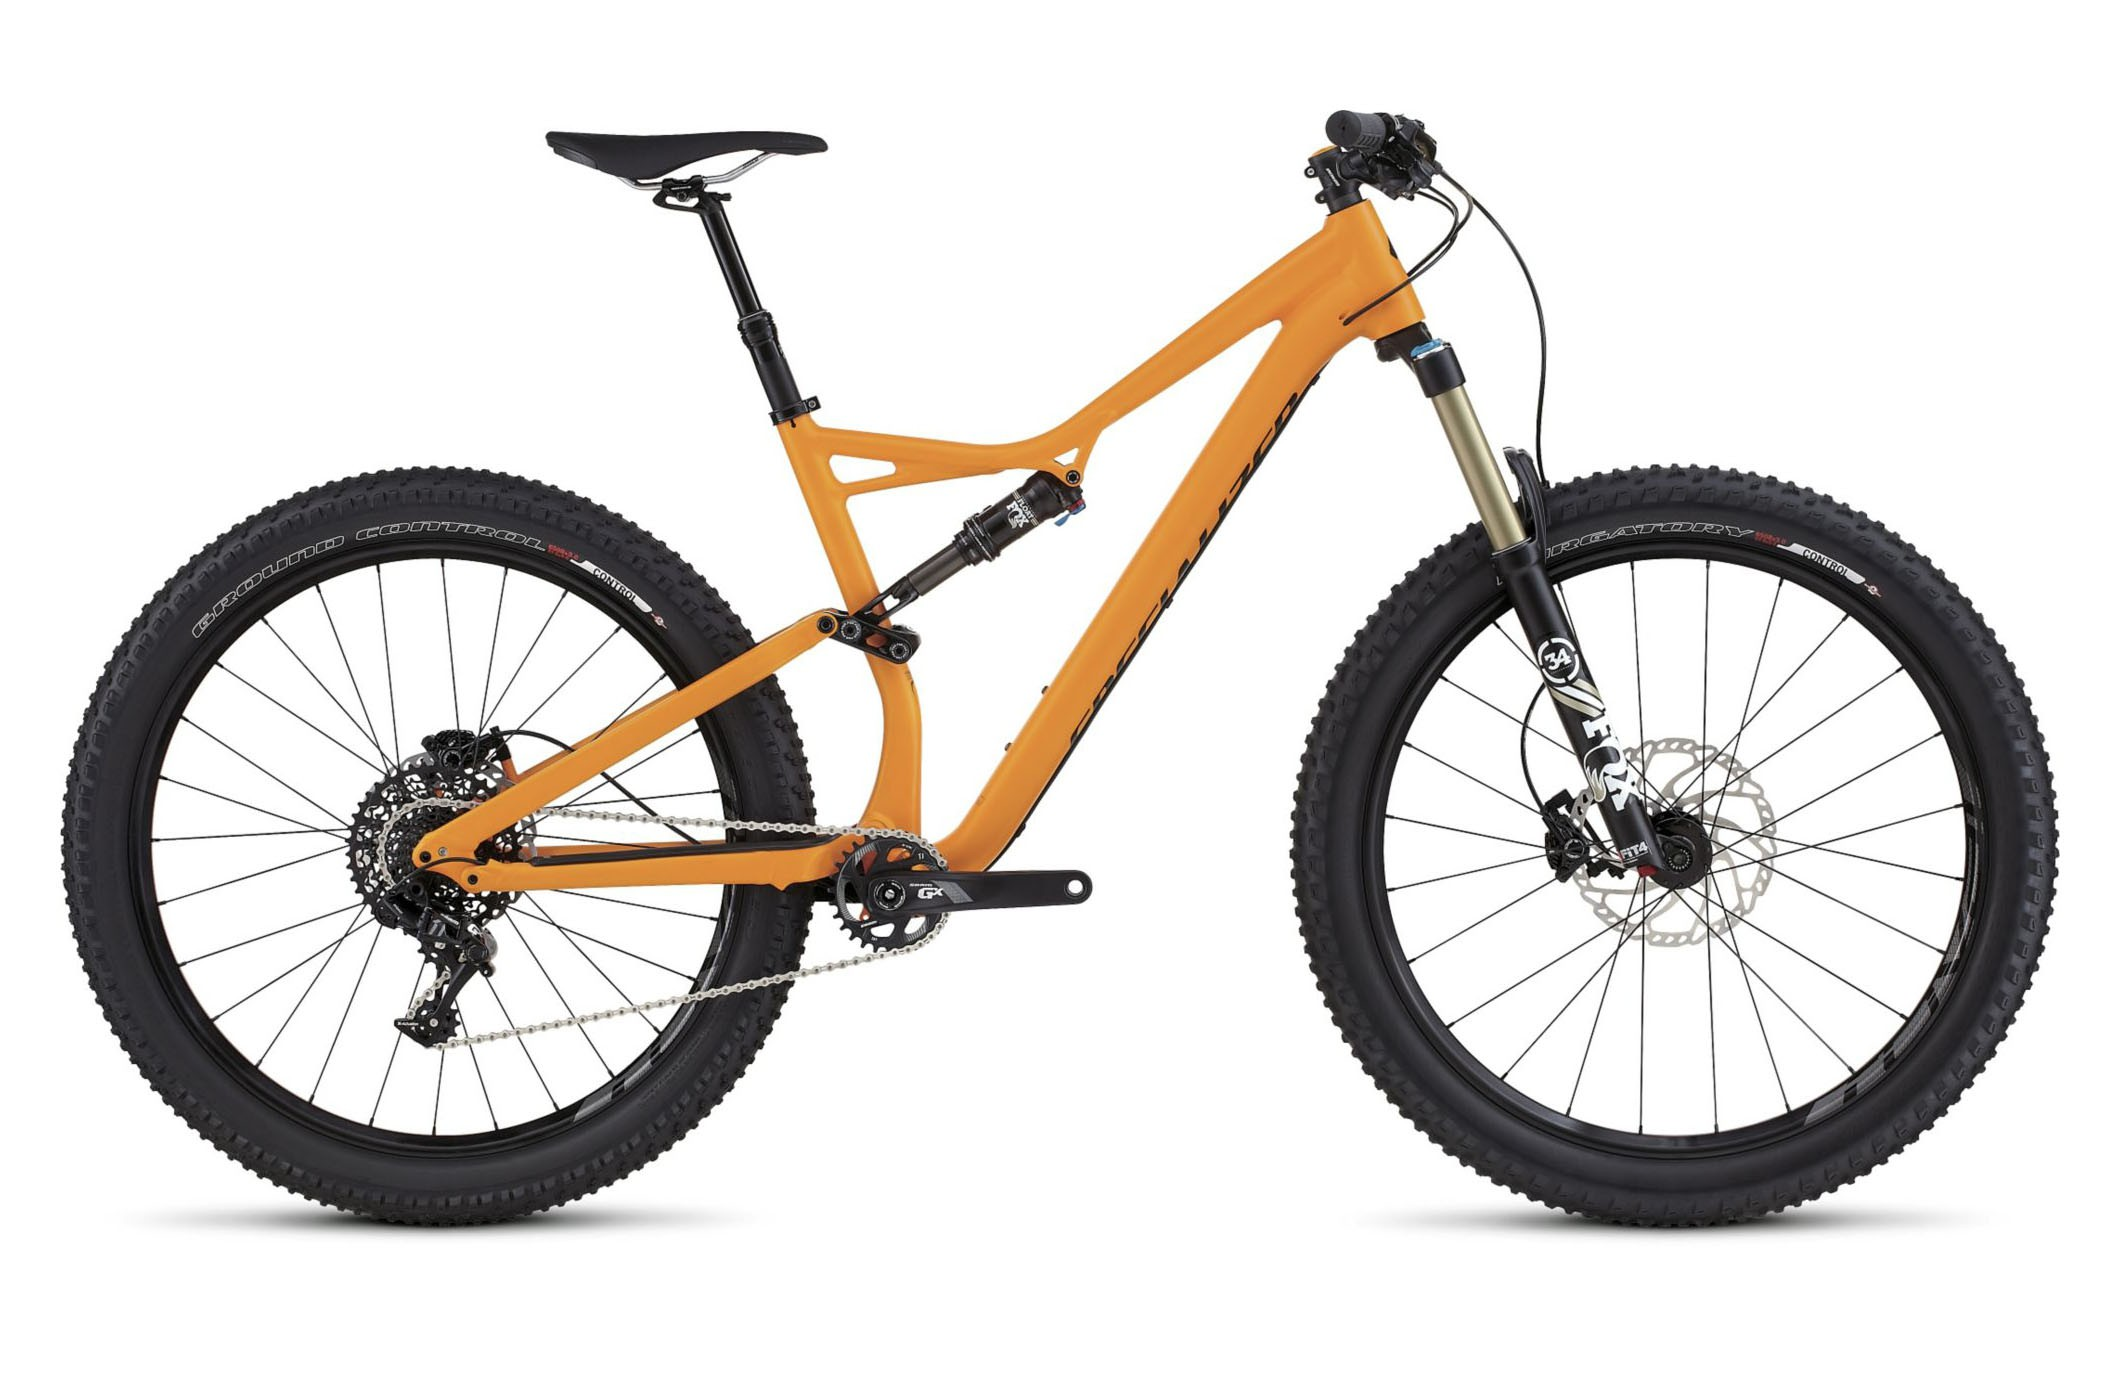 Горный велосипед Specialized Stumpjumper FSR Comp 650b (2016)